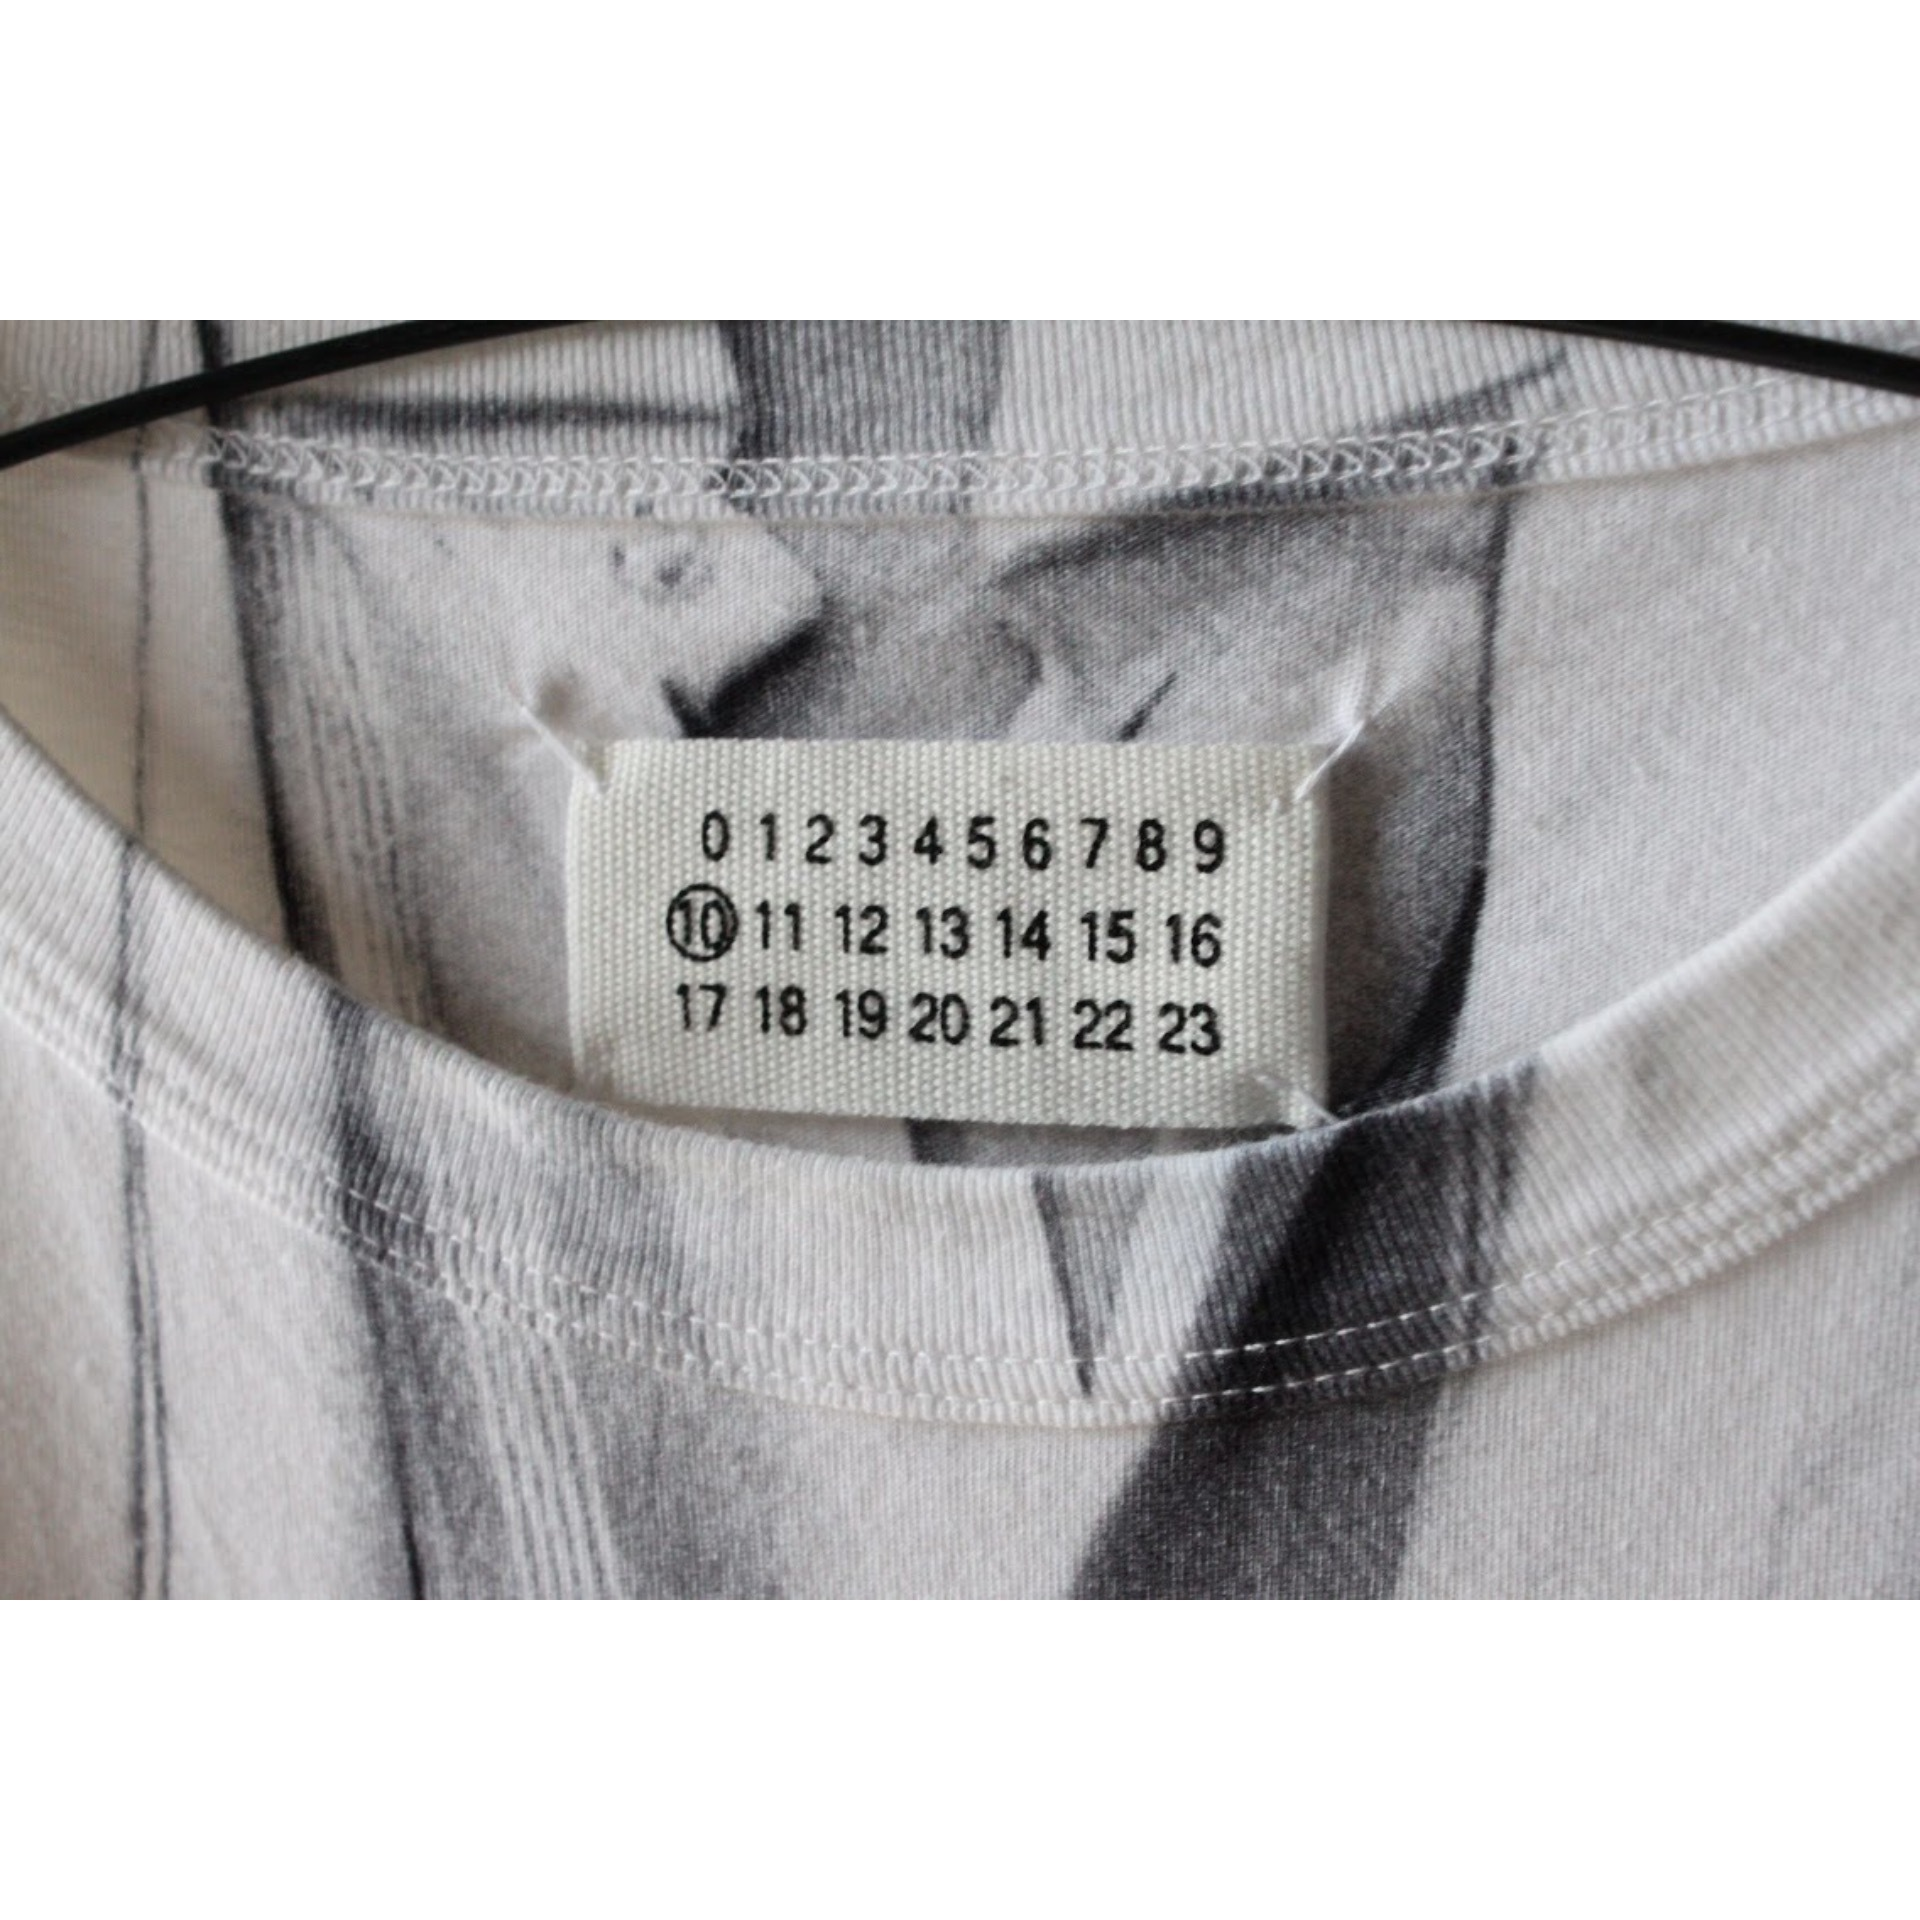 Printed long sleeve shirt by Maison Margiela